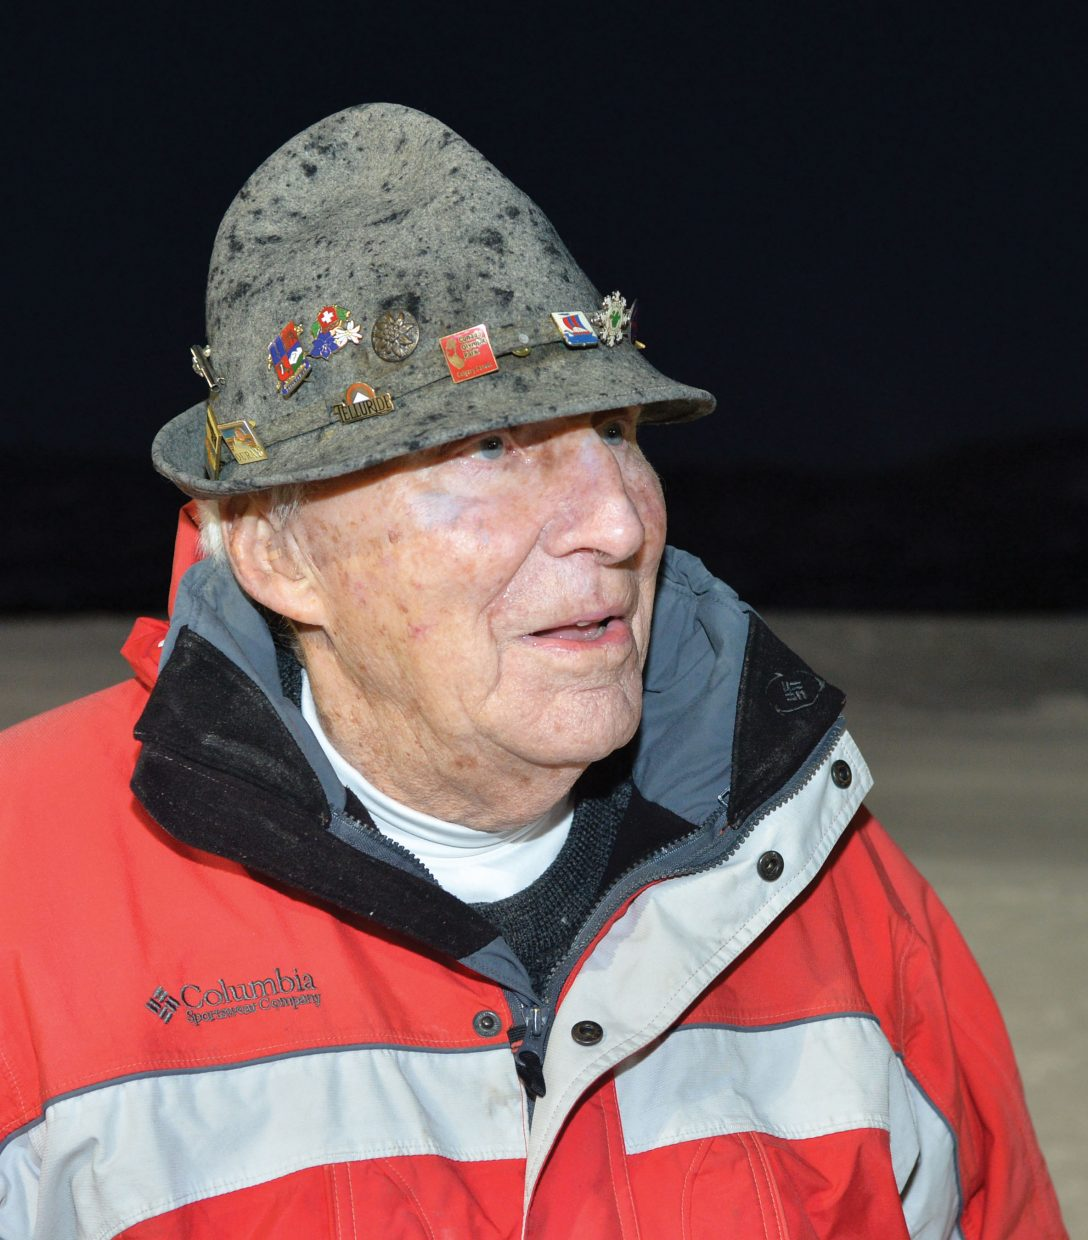 Colorado Skiing Hall of Fame member Crosby Perry-Smith, 91, of Steamboat Springs has vivid recollections of his days ski jumping at Howelsen Hill immediately after returning from World War II, as well as his years in the mid 1950s working as both head ski coach and ski area manager at Howelsen.